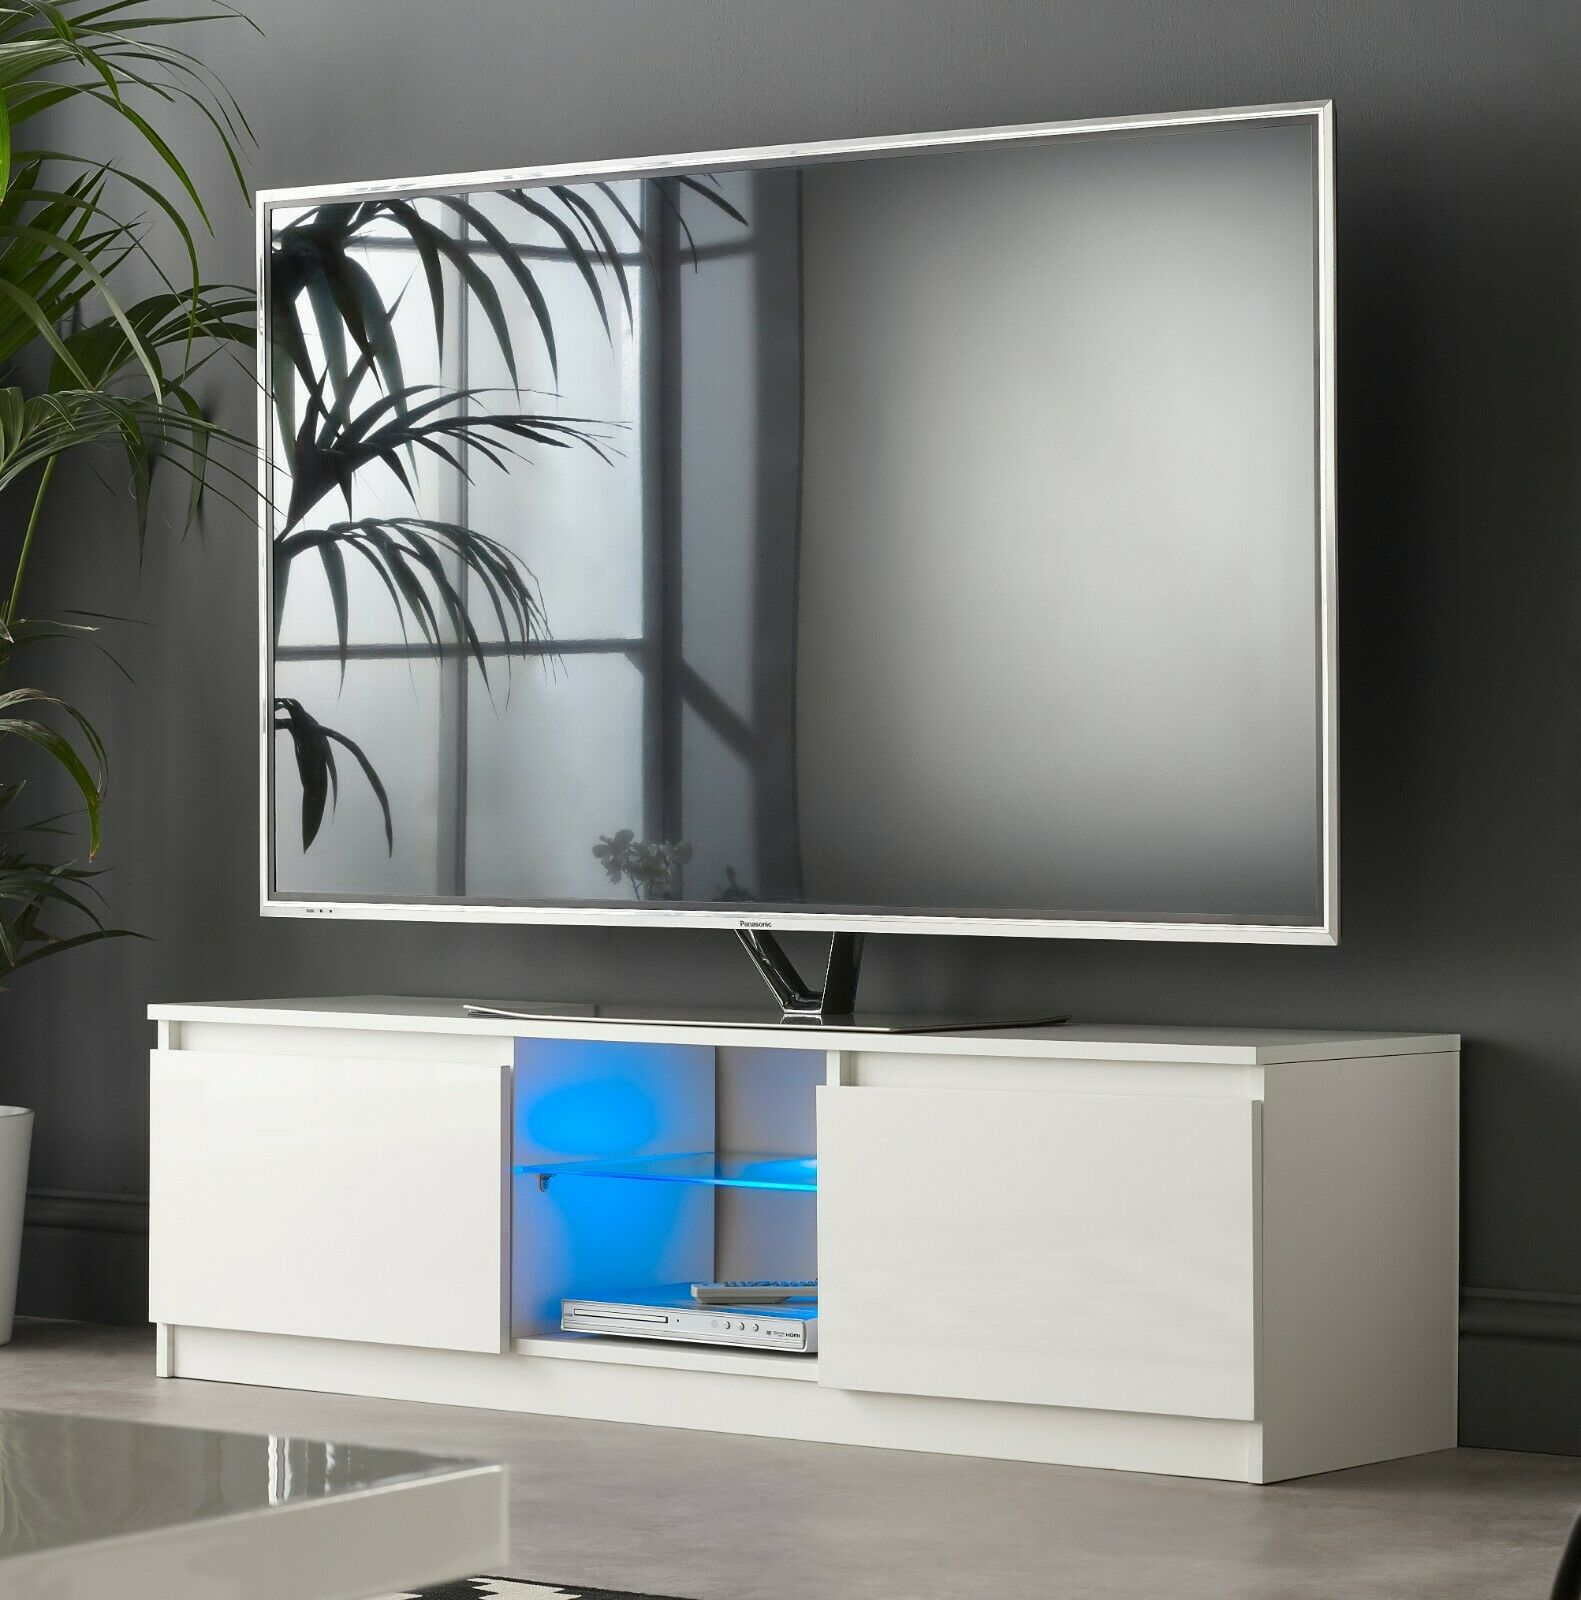 entertainment centres tv stands modern tv stand cabinet 120cm white gloss with blue led lights for 50 55 tv s home furniture diy itkart org